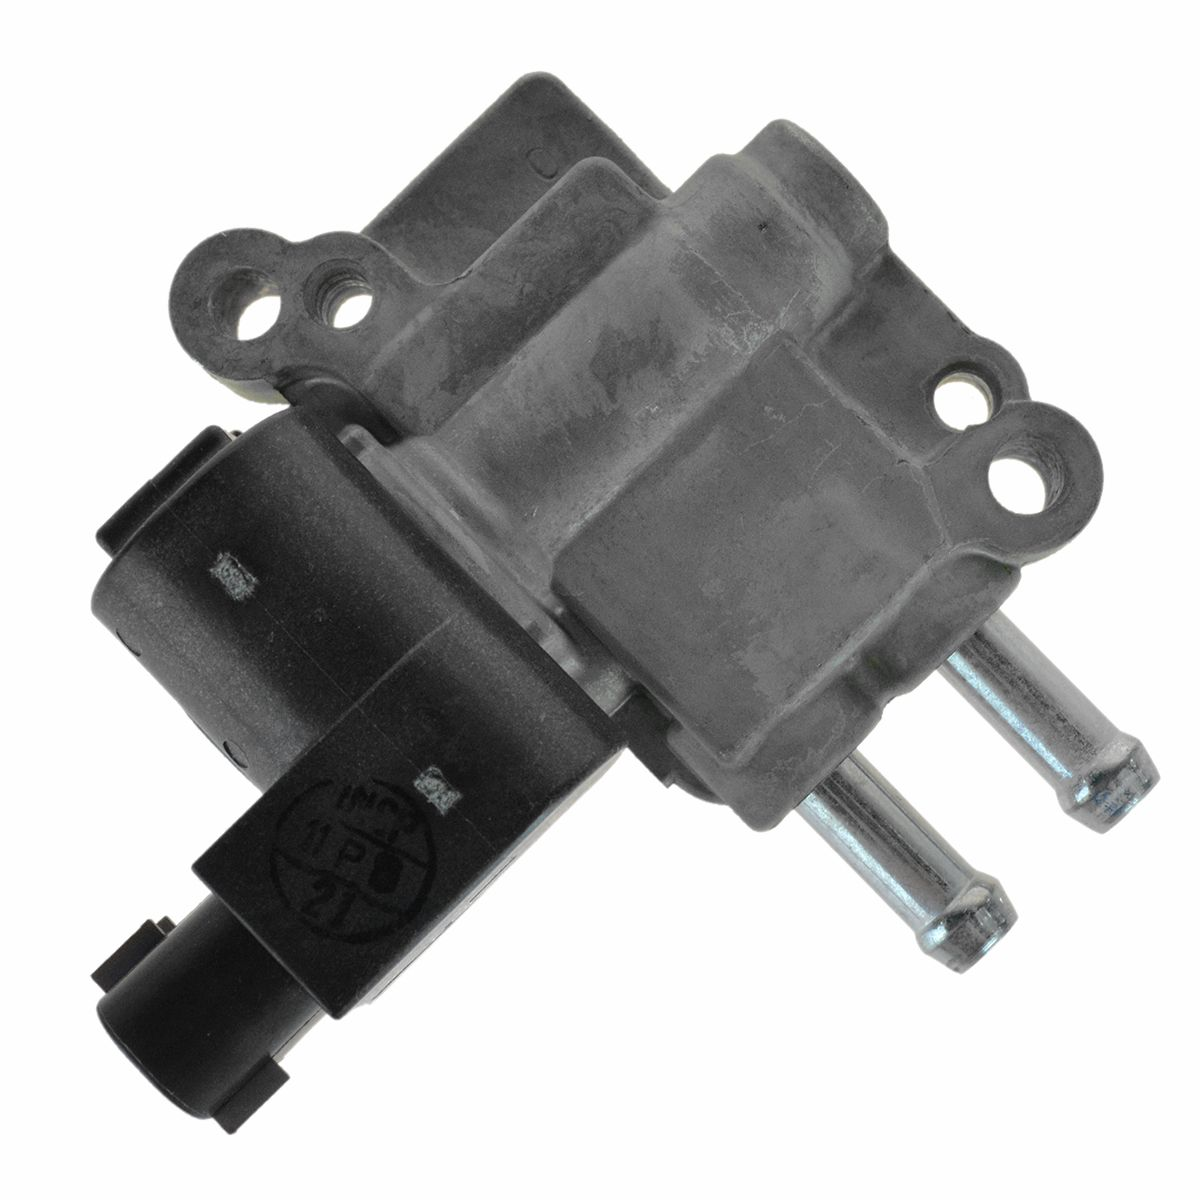 Honda CR-V Honda Odyssey Honda Accord Acura MDX Acura TL ANPART idle air control motor fit for Acura CL Honda Pilot Idle Air Control Valve